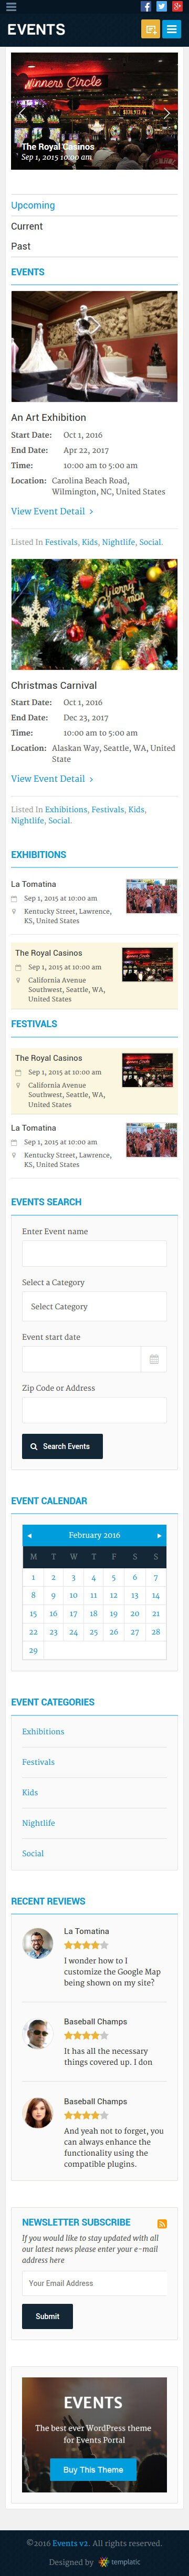 Mobile Friendly WP Events Theme